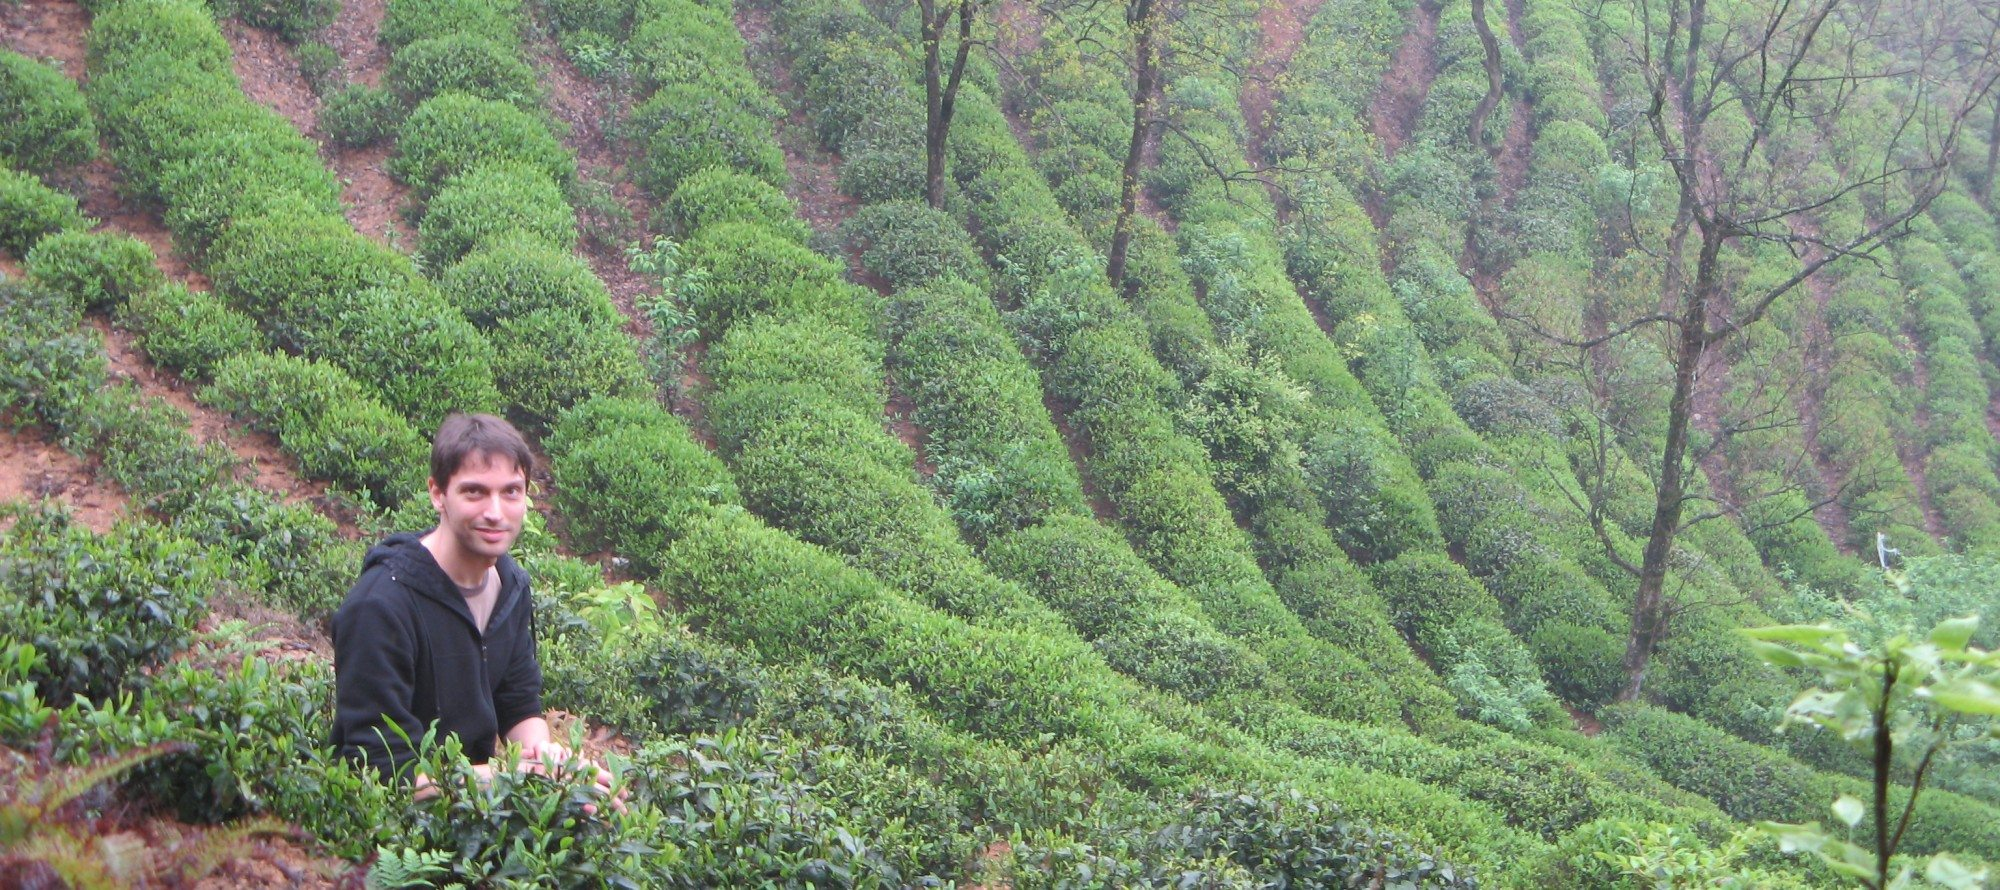 WORLD OF TEA: Daniel Tremblay of CHA YI Teahouse travelled to China and Taiwan in search of the latest and greatest